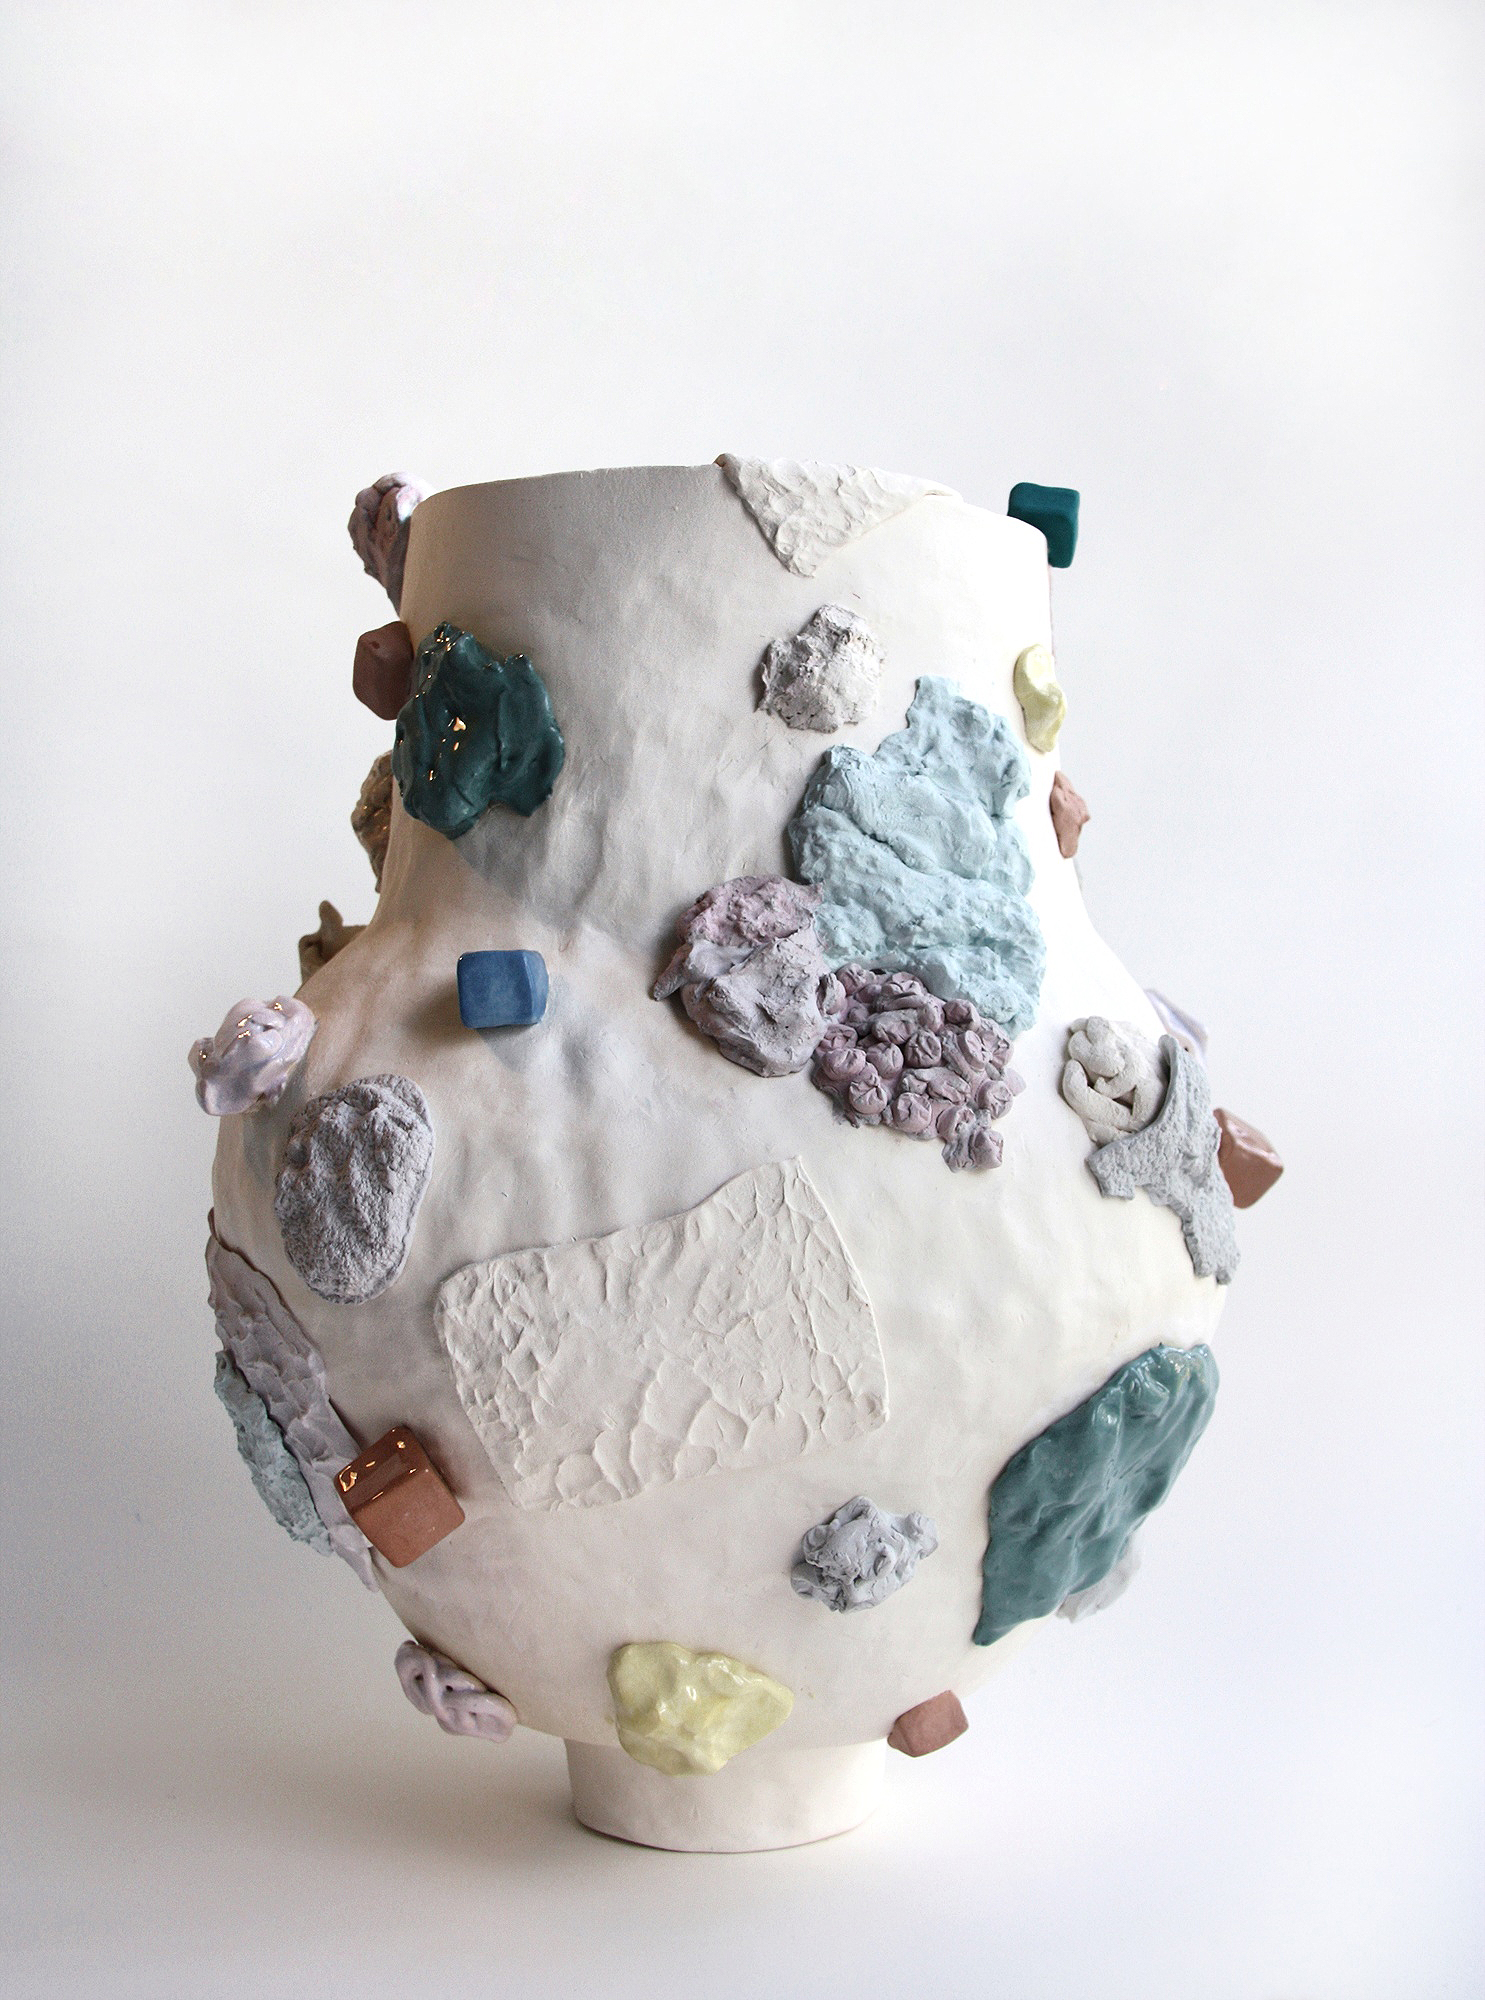 Madeleine Thornton-Smith,  Accumulation , 2018, earthenware, stain, glaze, 27 x 35 cm. Image courtesy the artist.